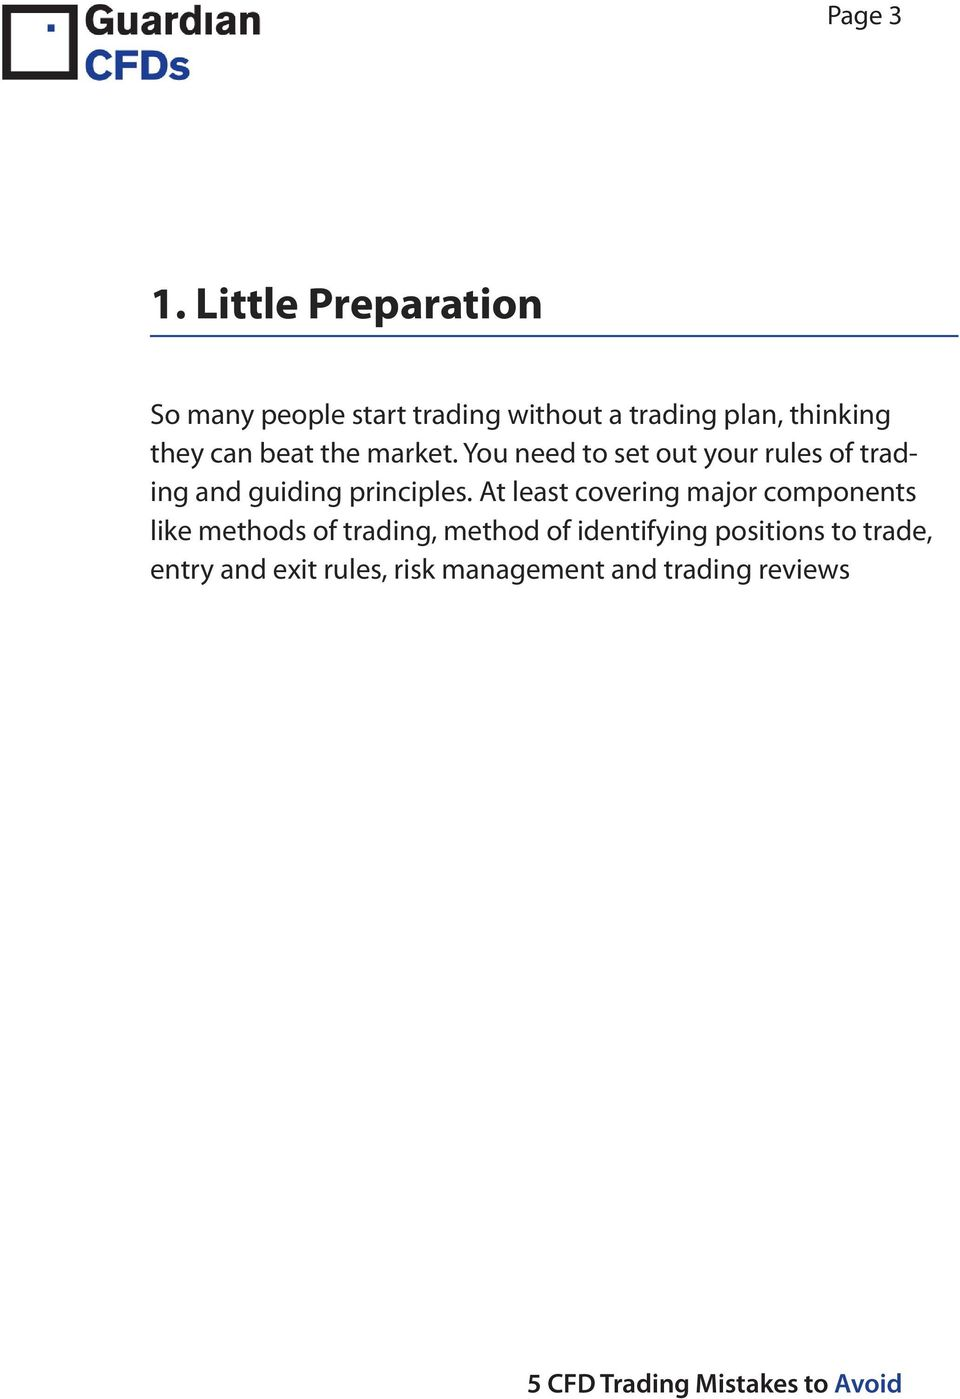 can beat the market. You need to set out your rules of trading and guiding principles.